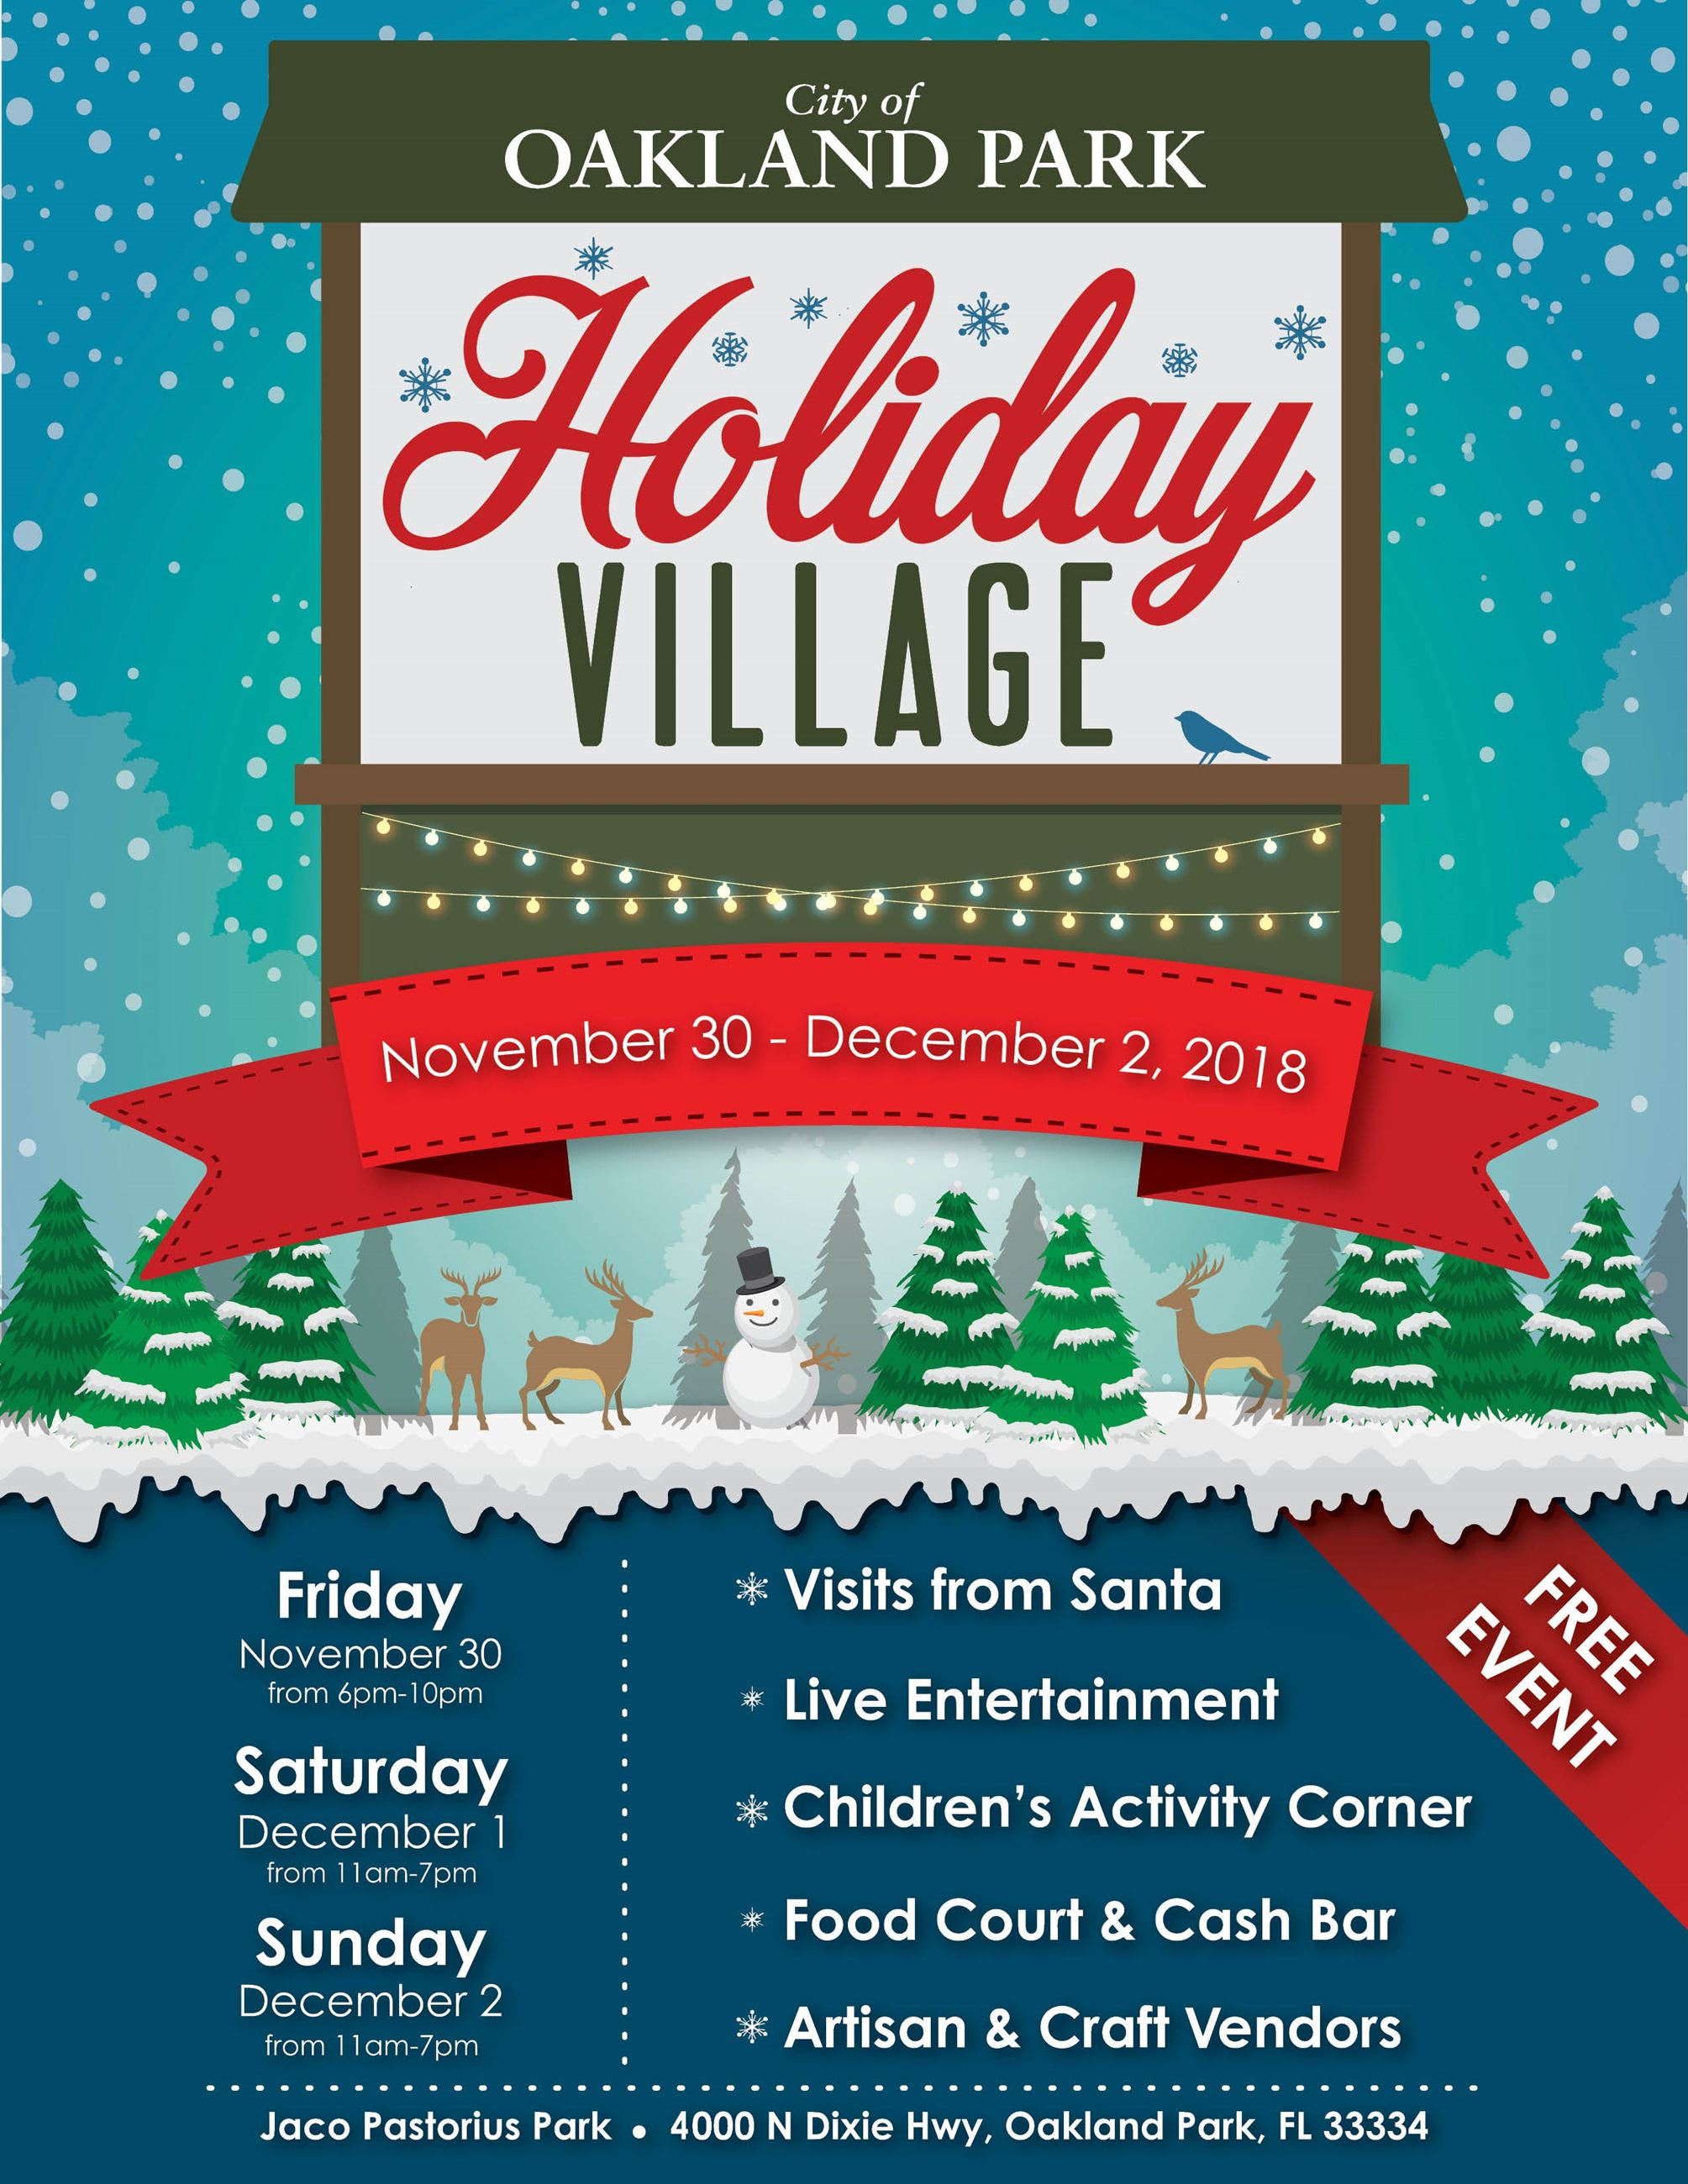 Holliday Village 2018